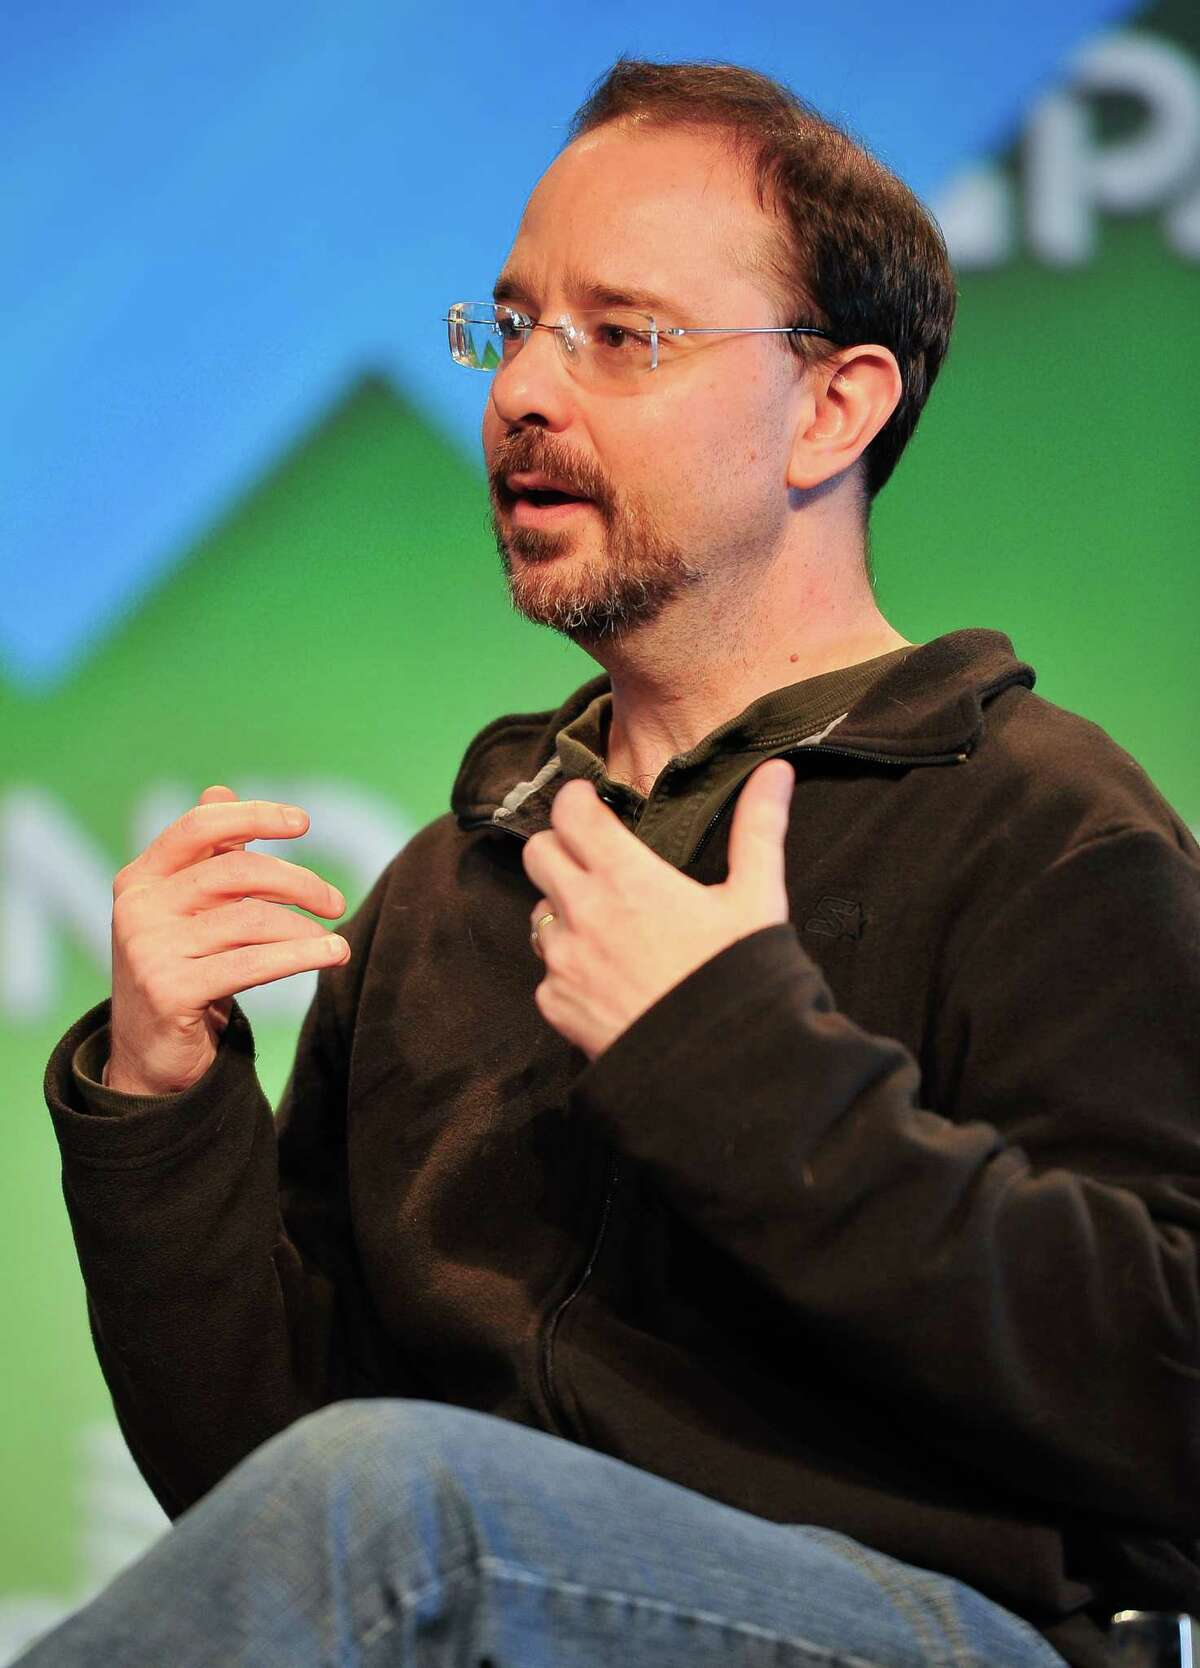 SAN FRANCISCO, CA - MARCH 16: John Scalzi speaks at the Science Fiction panel at Engadget Expand - Day 1 at Fort Mason Center on March 16, 2013 in San Francisco, California. (Photo by Steve Jennings/Getty Images for Engadget)